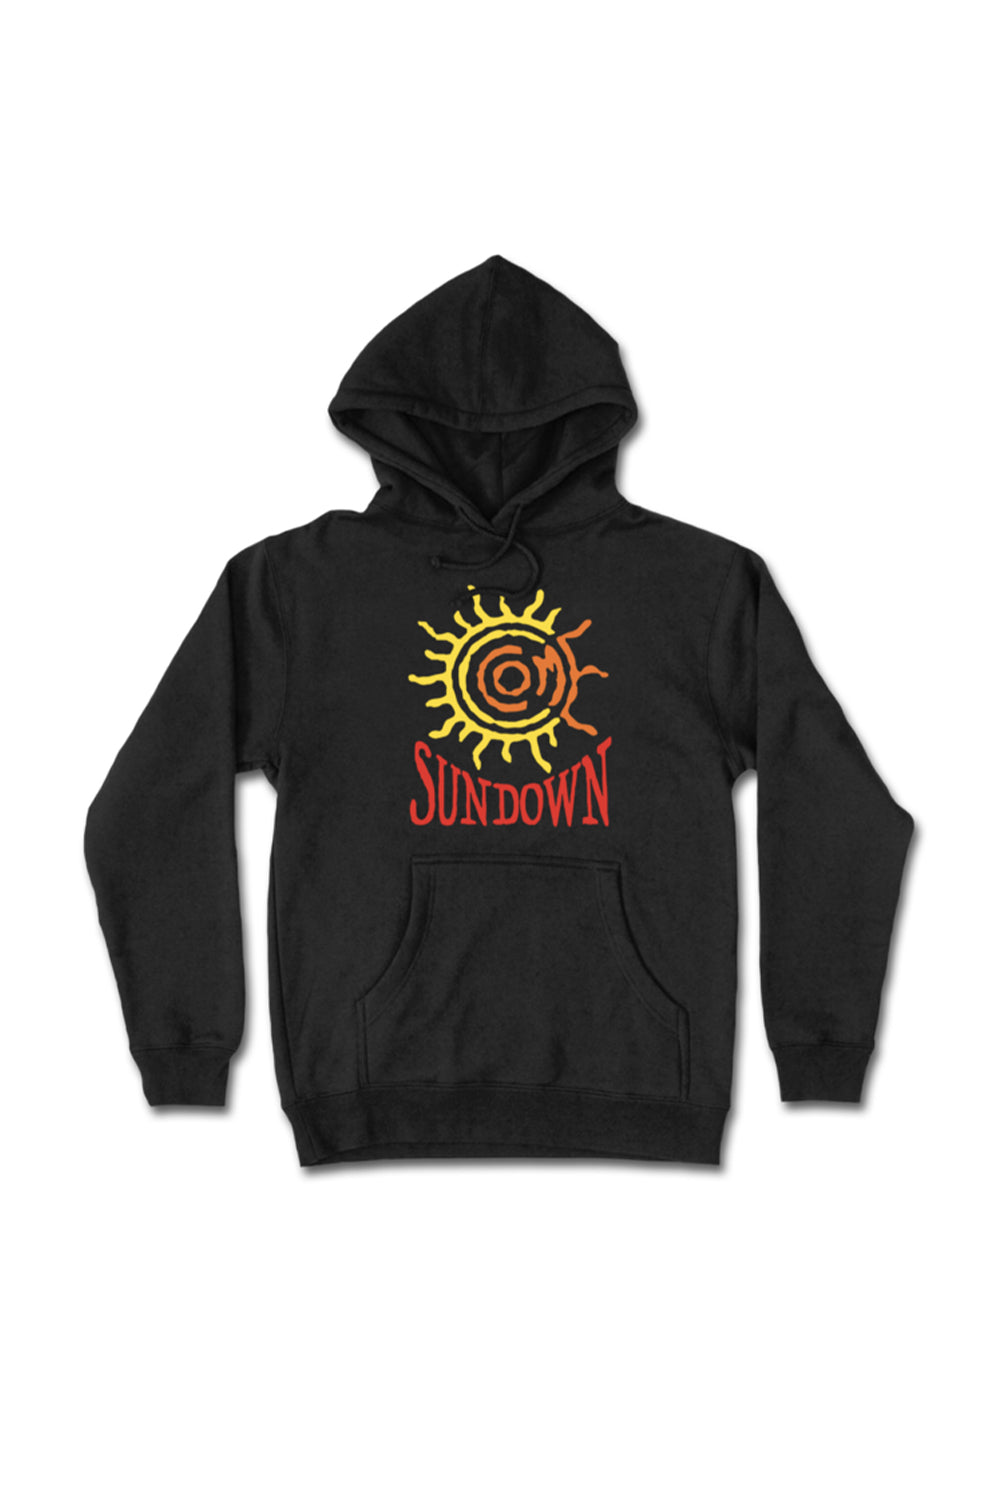 Shop Come Sundown | Come Sundown Sun (Puff Print) Hoodie